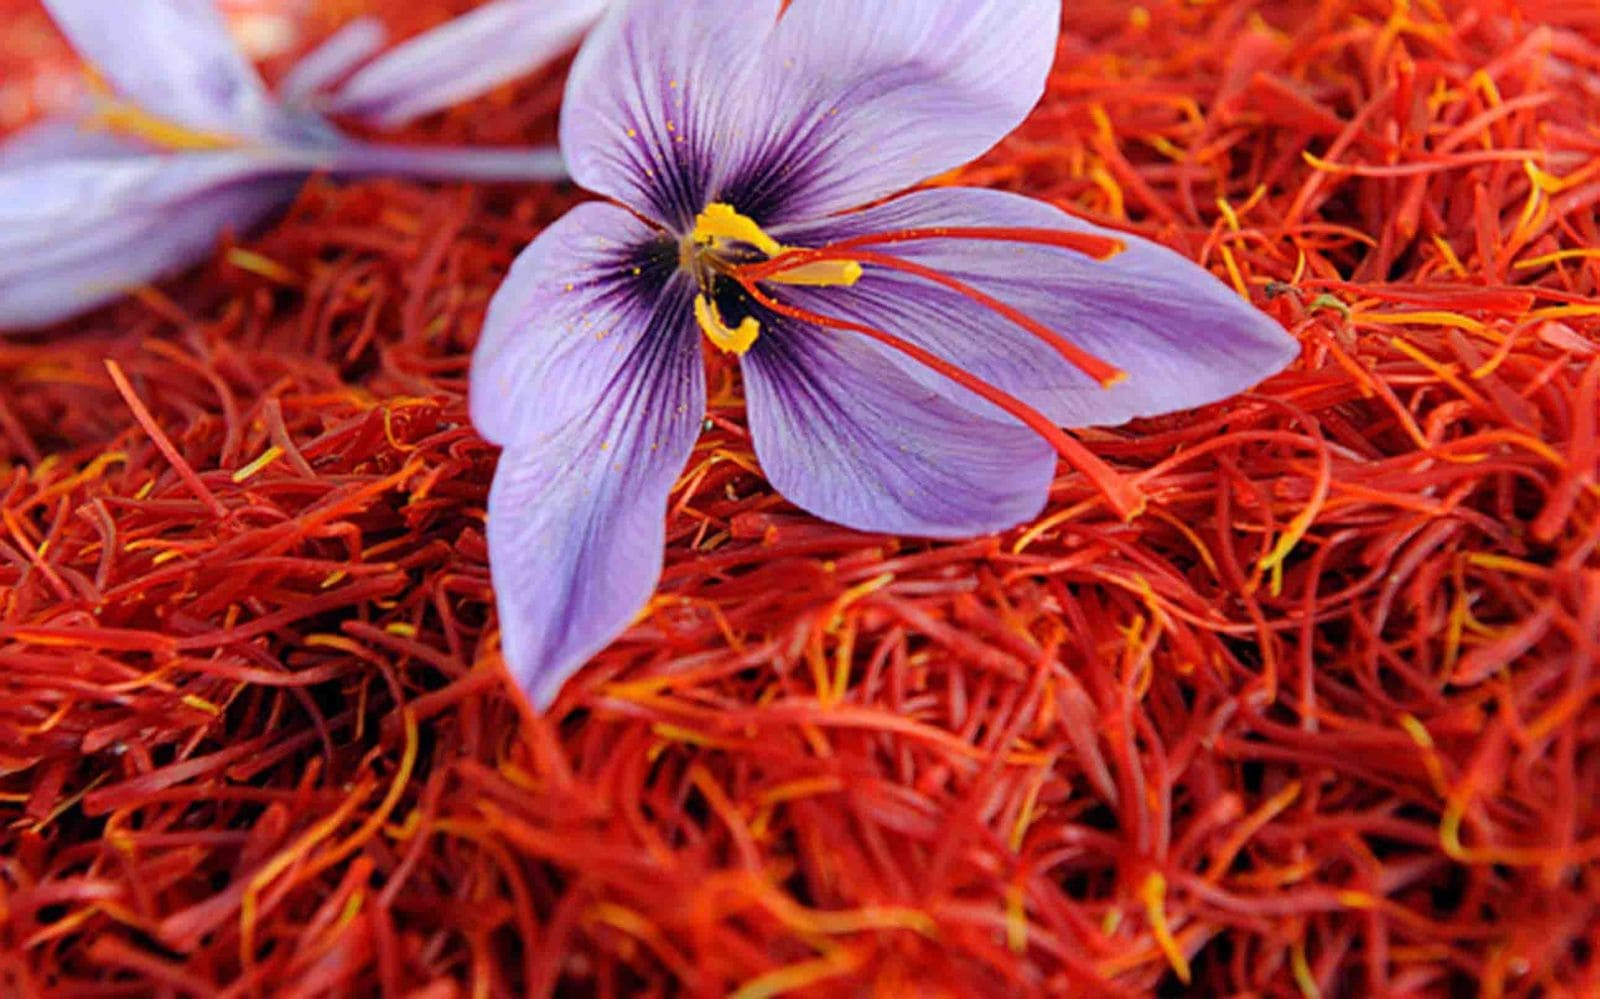 Export of saffron by Rama Food Company